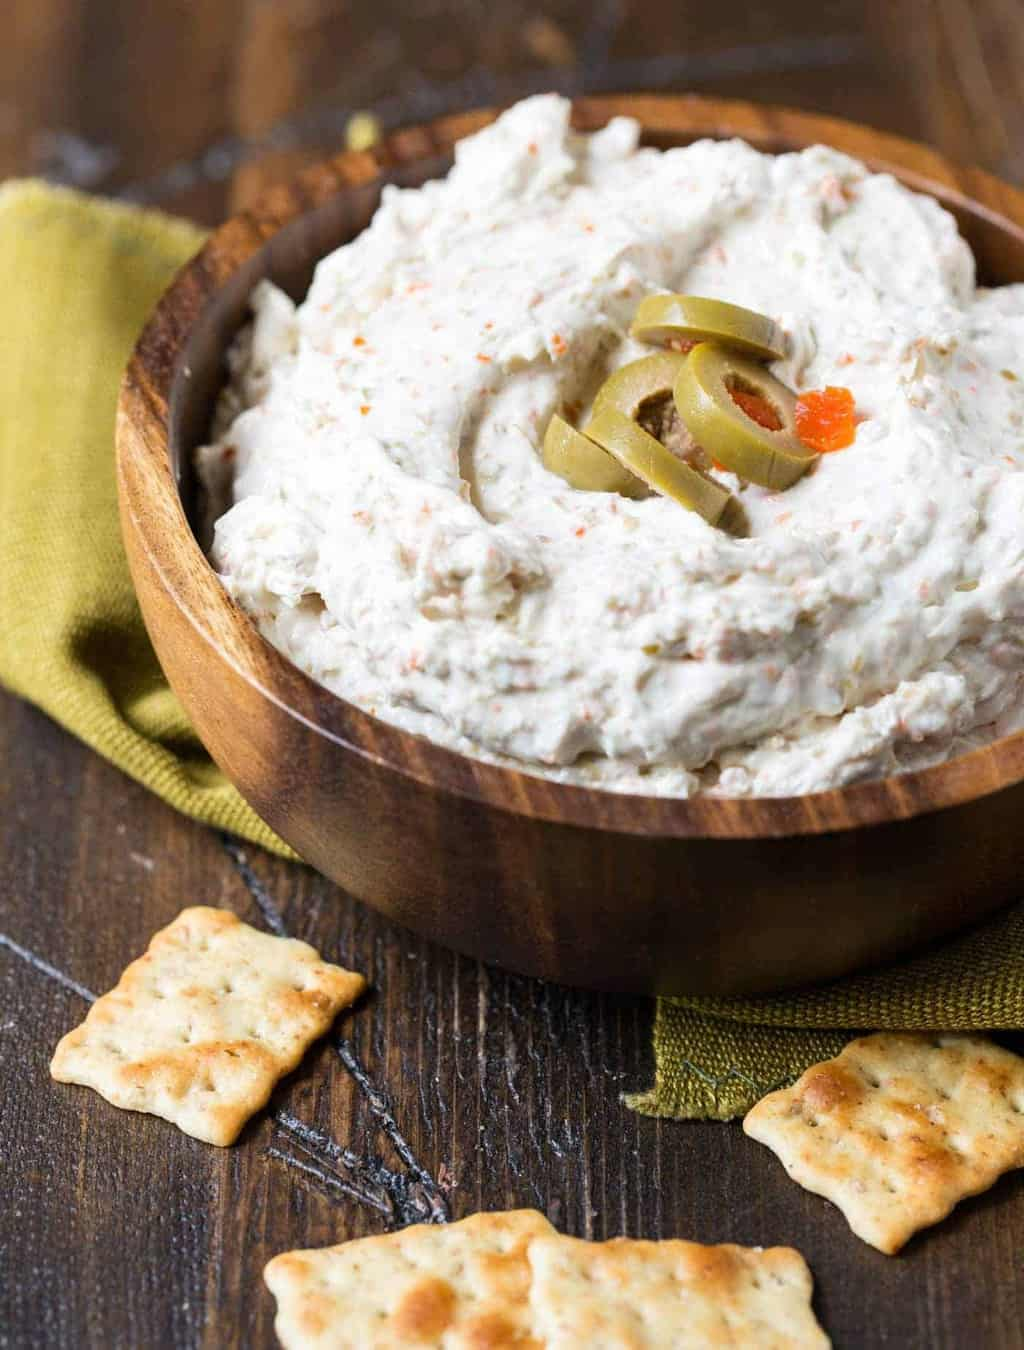 Close up of green olive dip in wooden bowl with crackers and sliced olives.